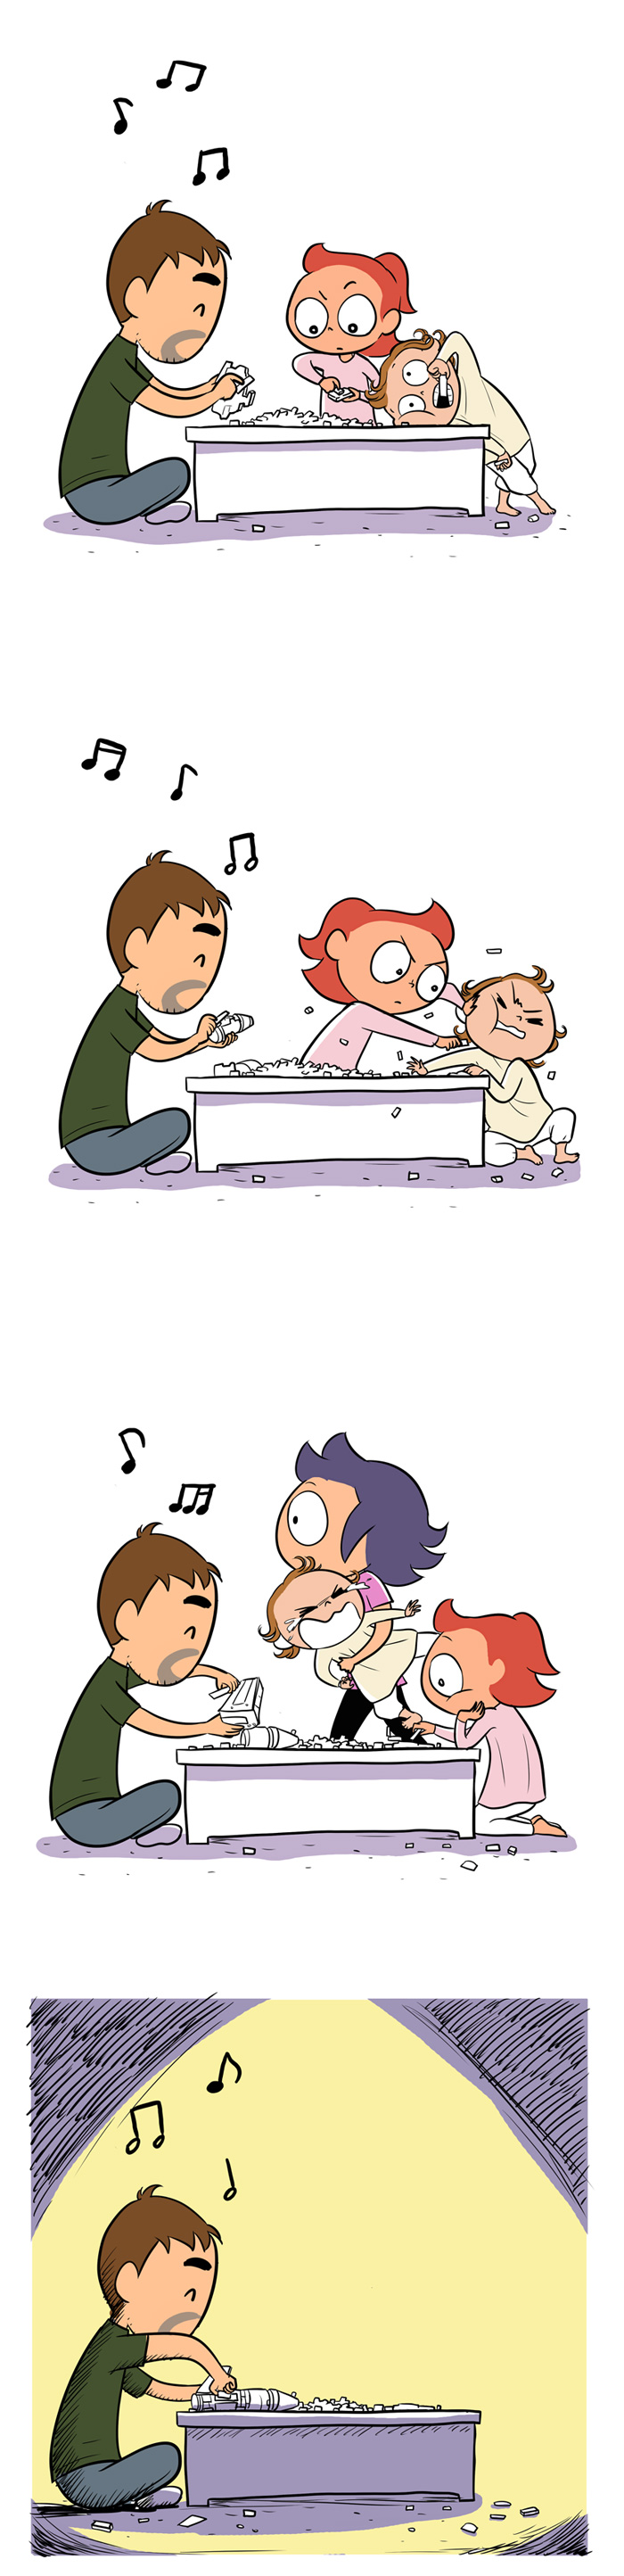 When Dad Buys Toys - Comic